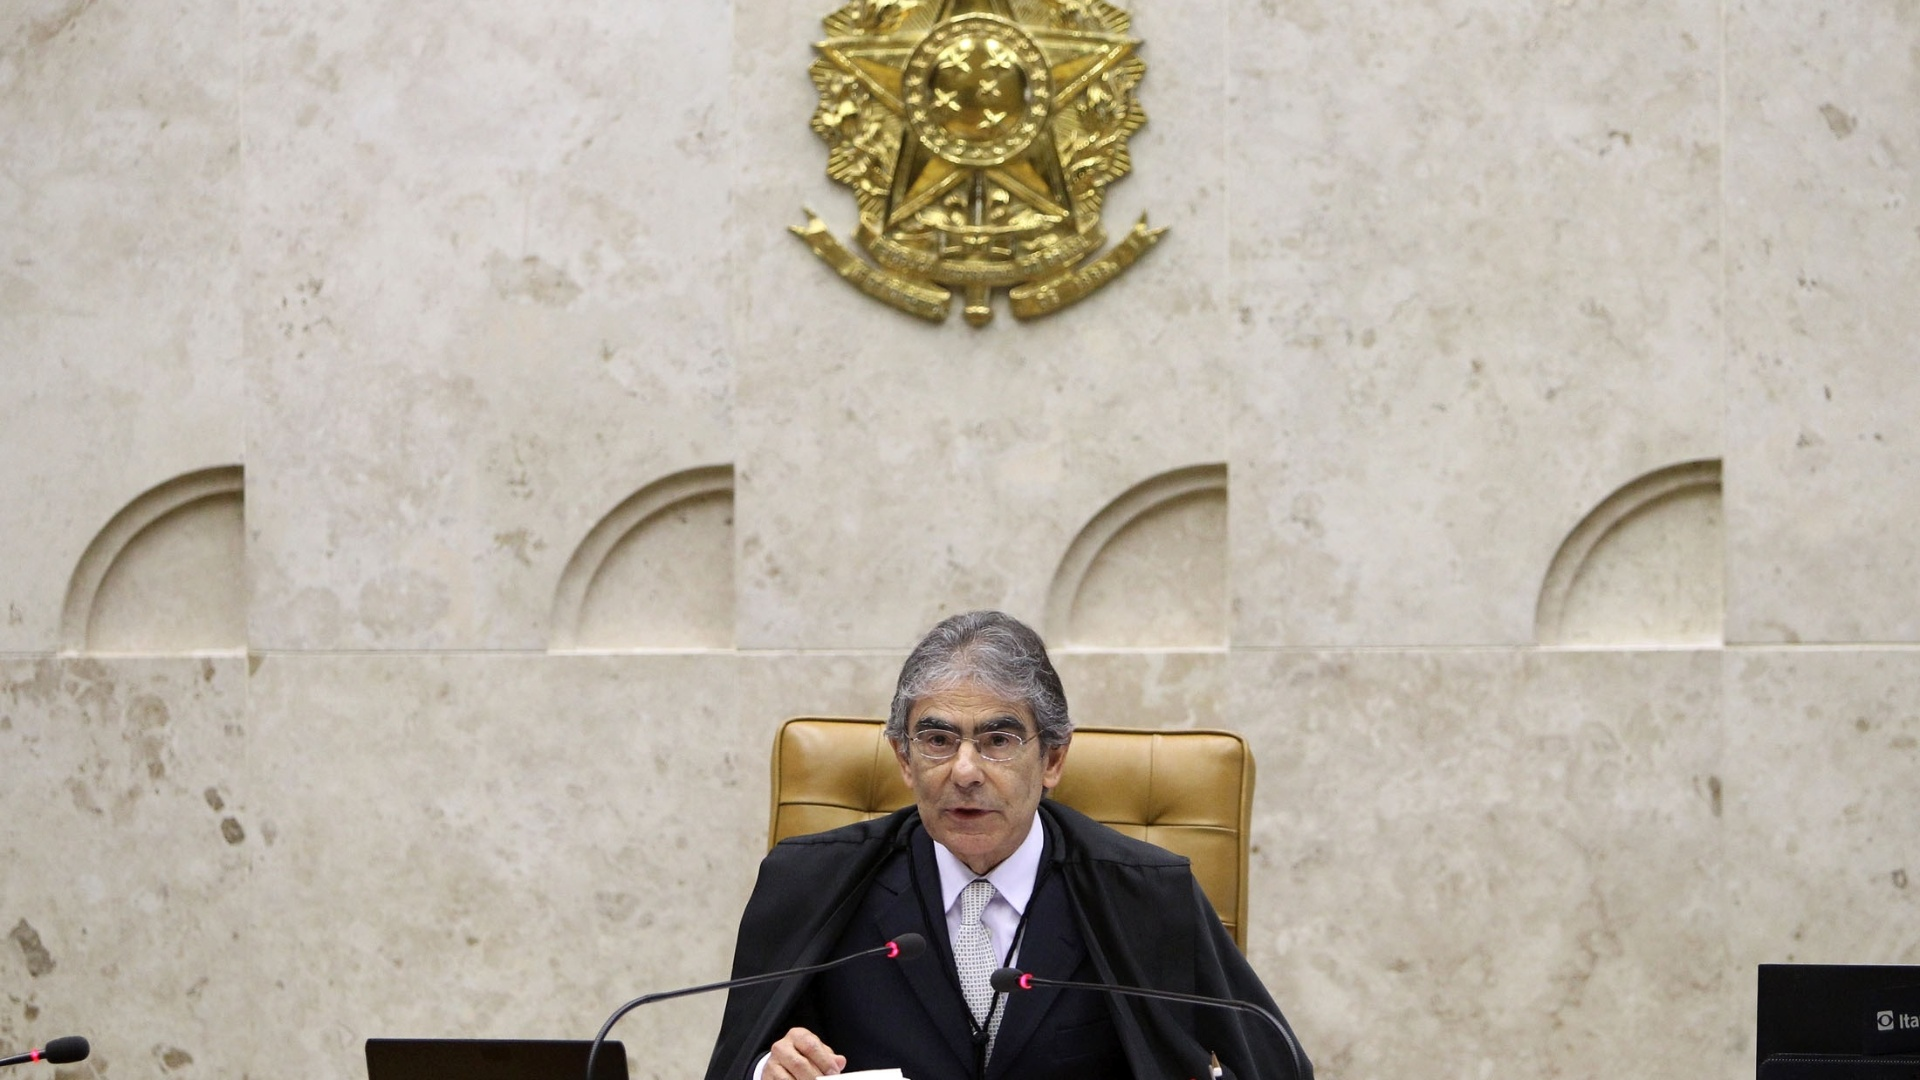 14.nov.2012 - O presidente do Supremo Tribunal Federal, o ministro Ayres Britto, dá início à sessão de julgamento do mensalão que define pena de ex-dirigentes do Banco Rural